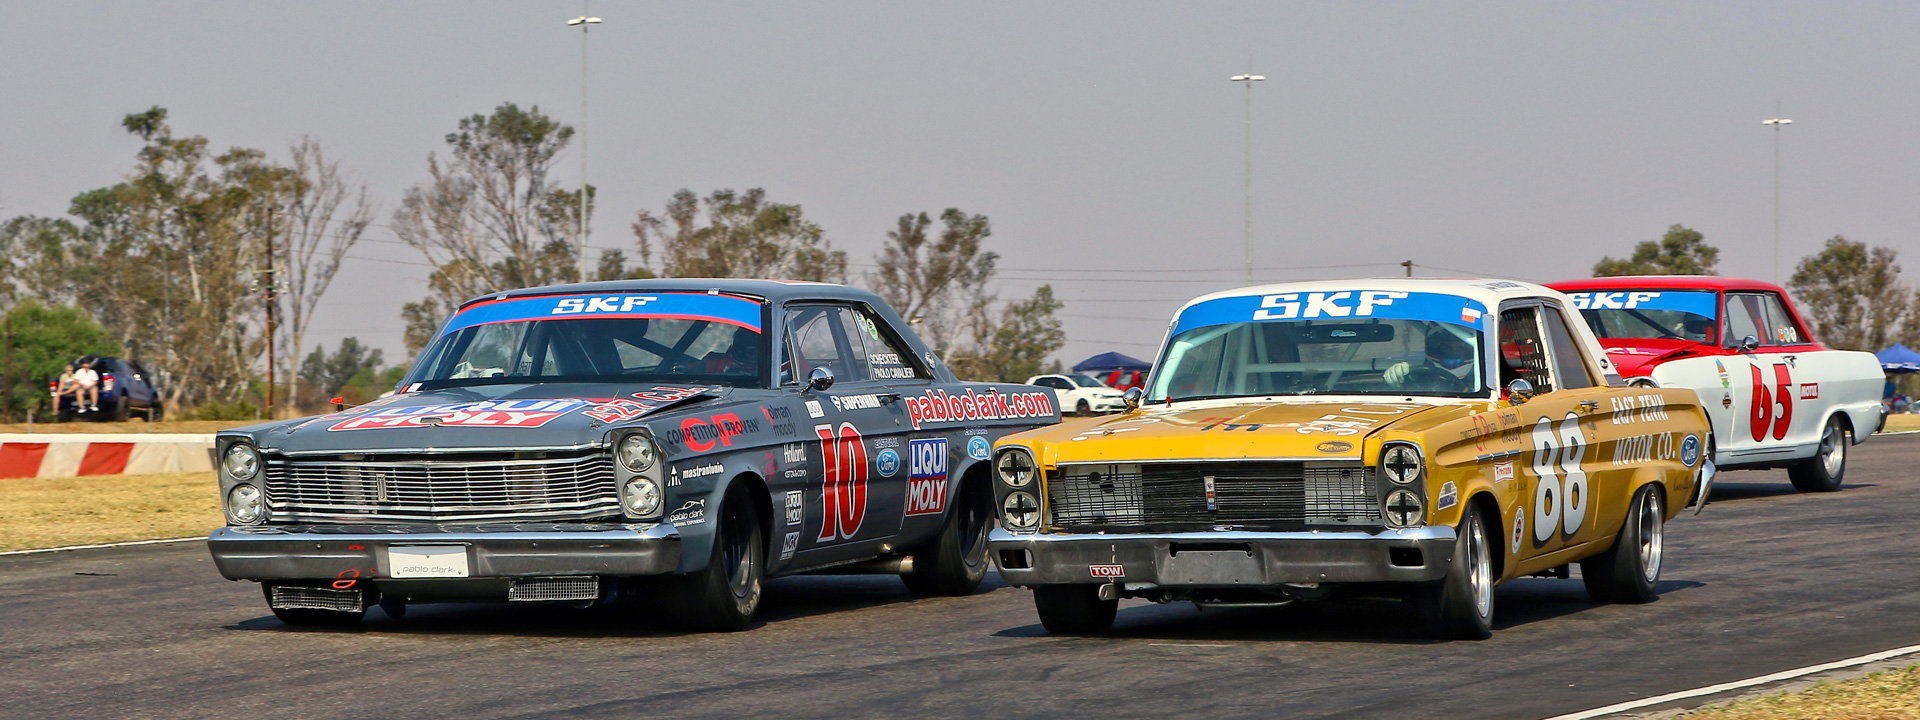 Spectacular Historic Car Racing at Zwartkops - 16 September 2017